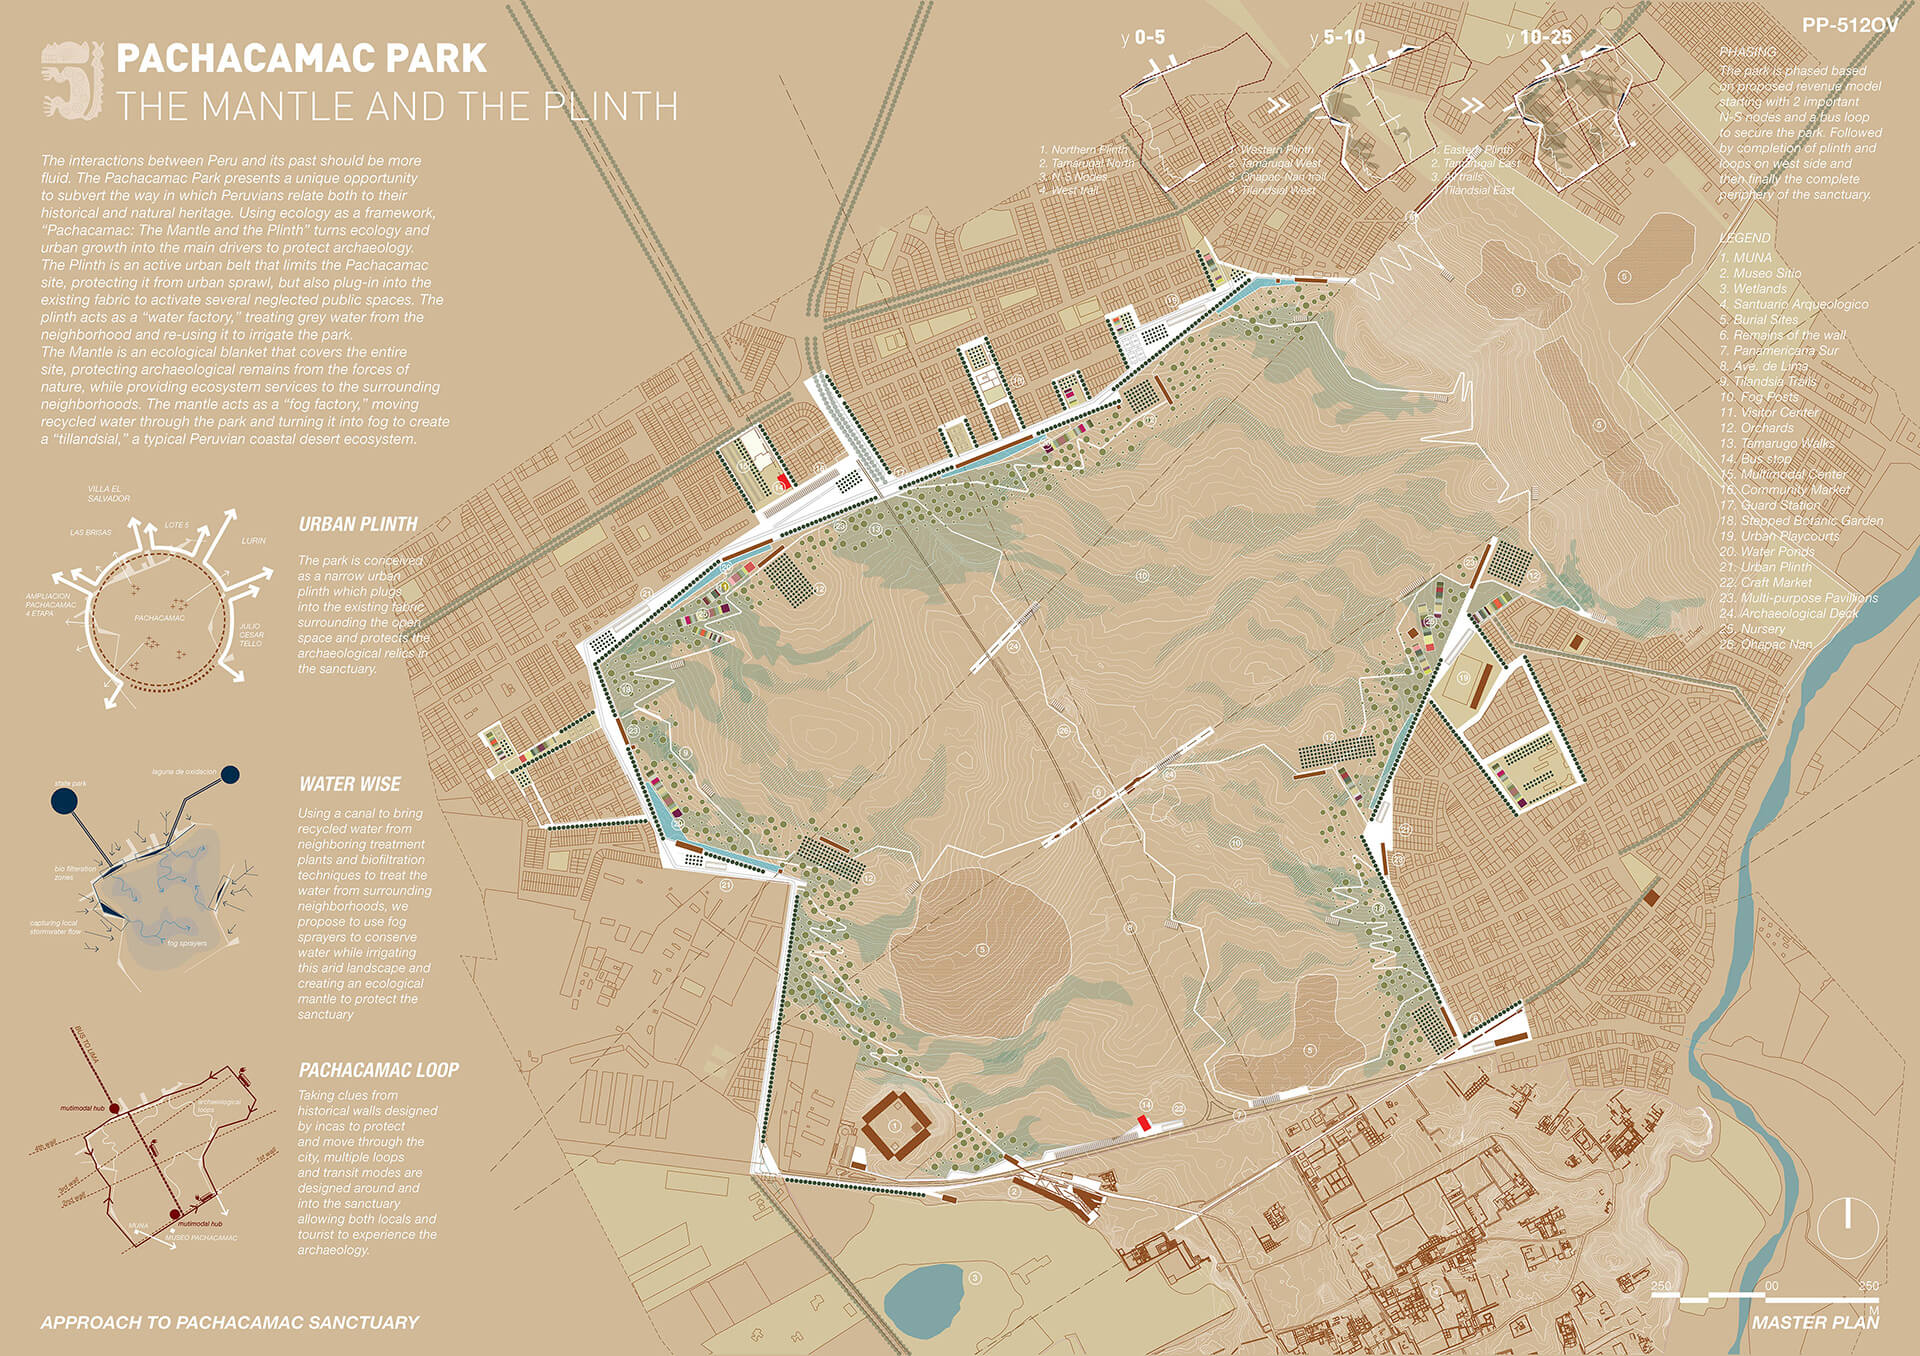 'Parque Pachacamac: The Mantle and the Plinth', the winning proposal for the design of a public park in Pachacamac, Lima | Parque Pachacamac: The Mantle and the Plinth | Alfaro Lachhwani McKay | STIRworld